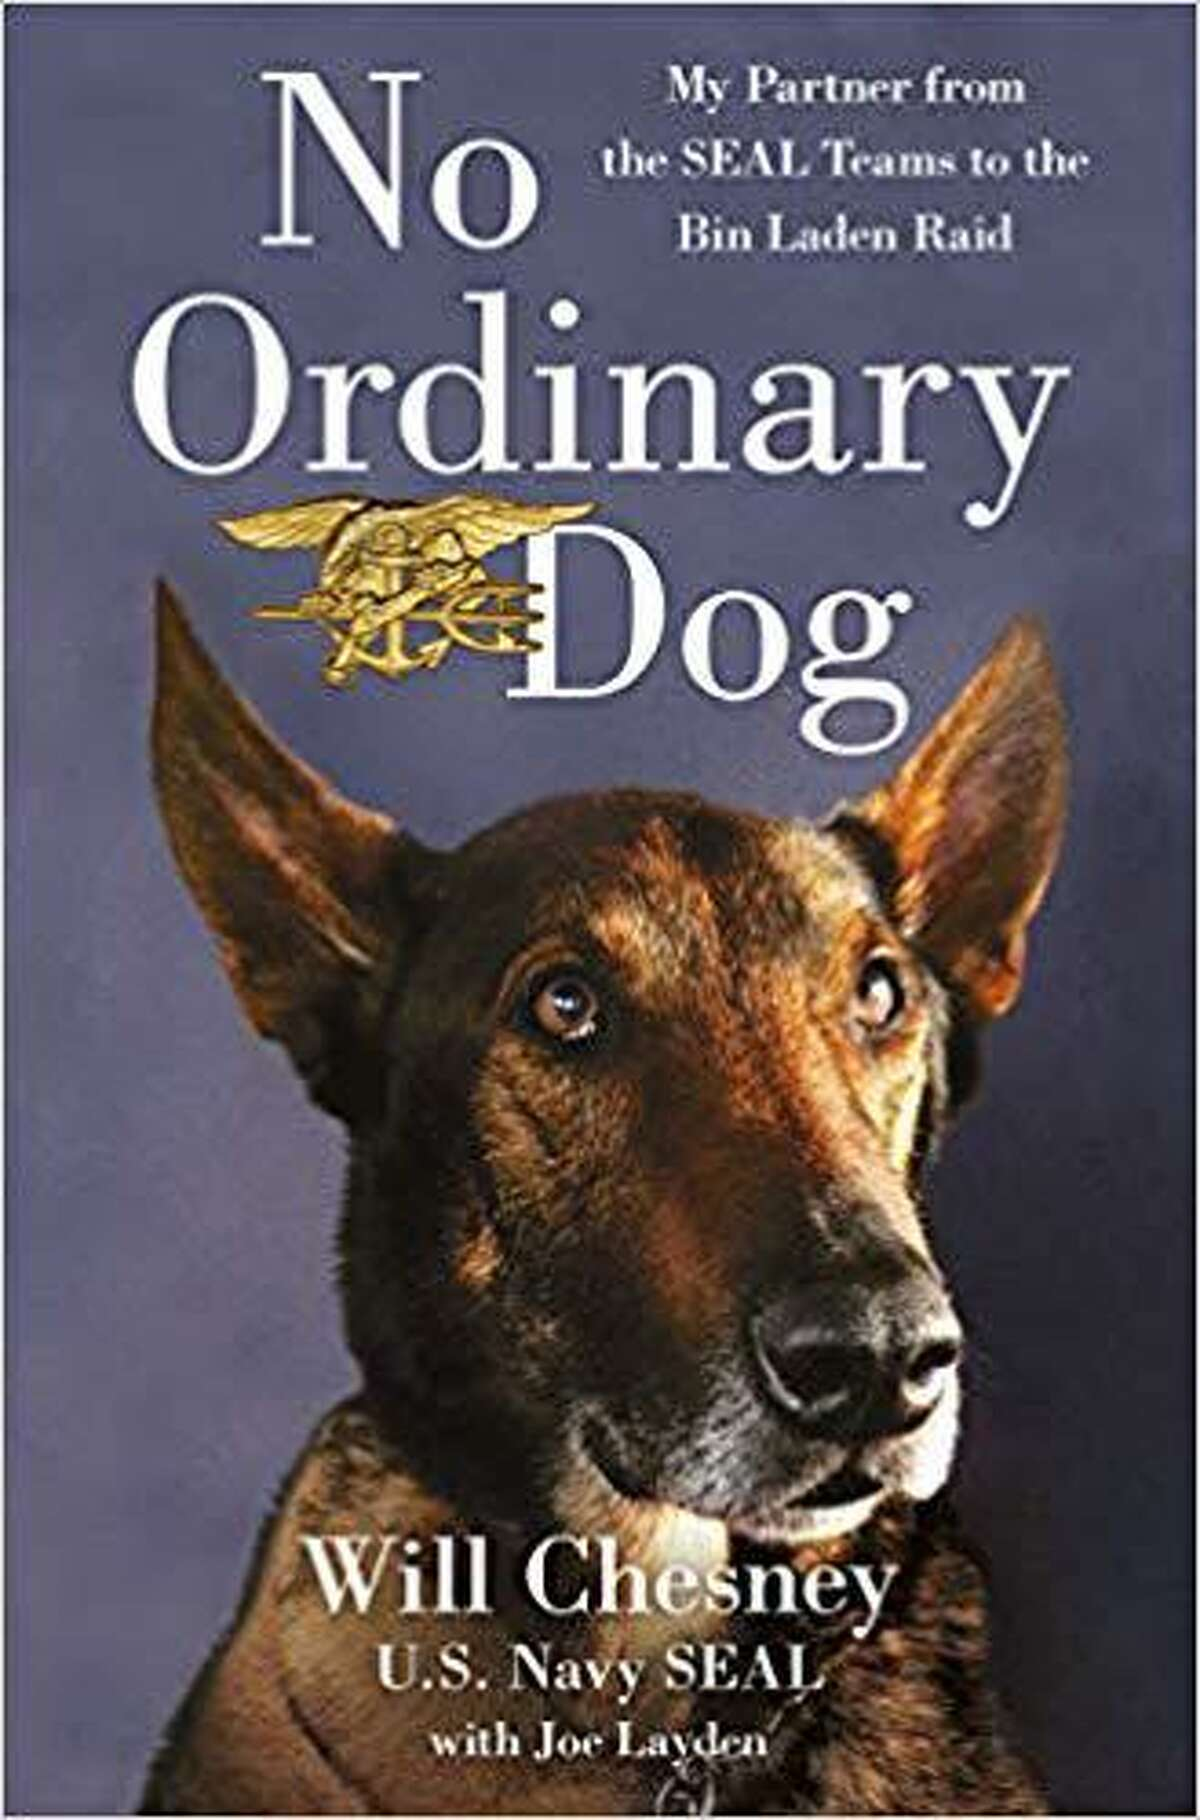 """Chesney's book,""""No Ordinary Dog: My Partner from the SEAL Teams to the Bin Laden Raid"""", which comes out April 21. The story is about Cairo, the K9 who served with Chesney through his military career."""